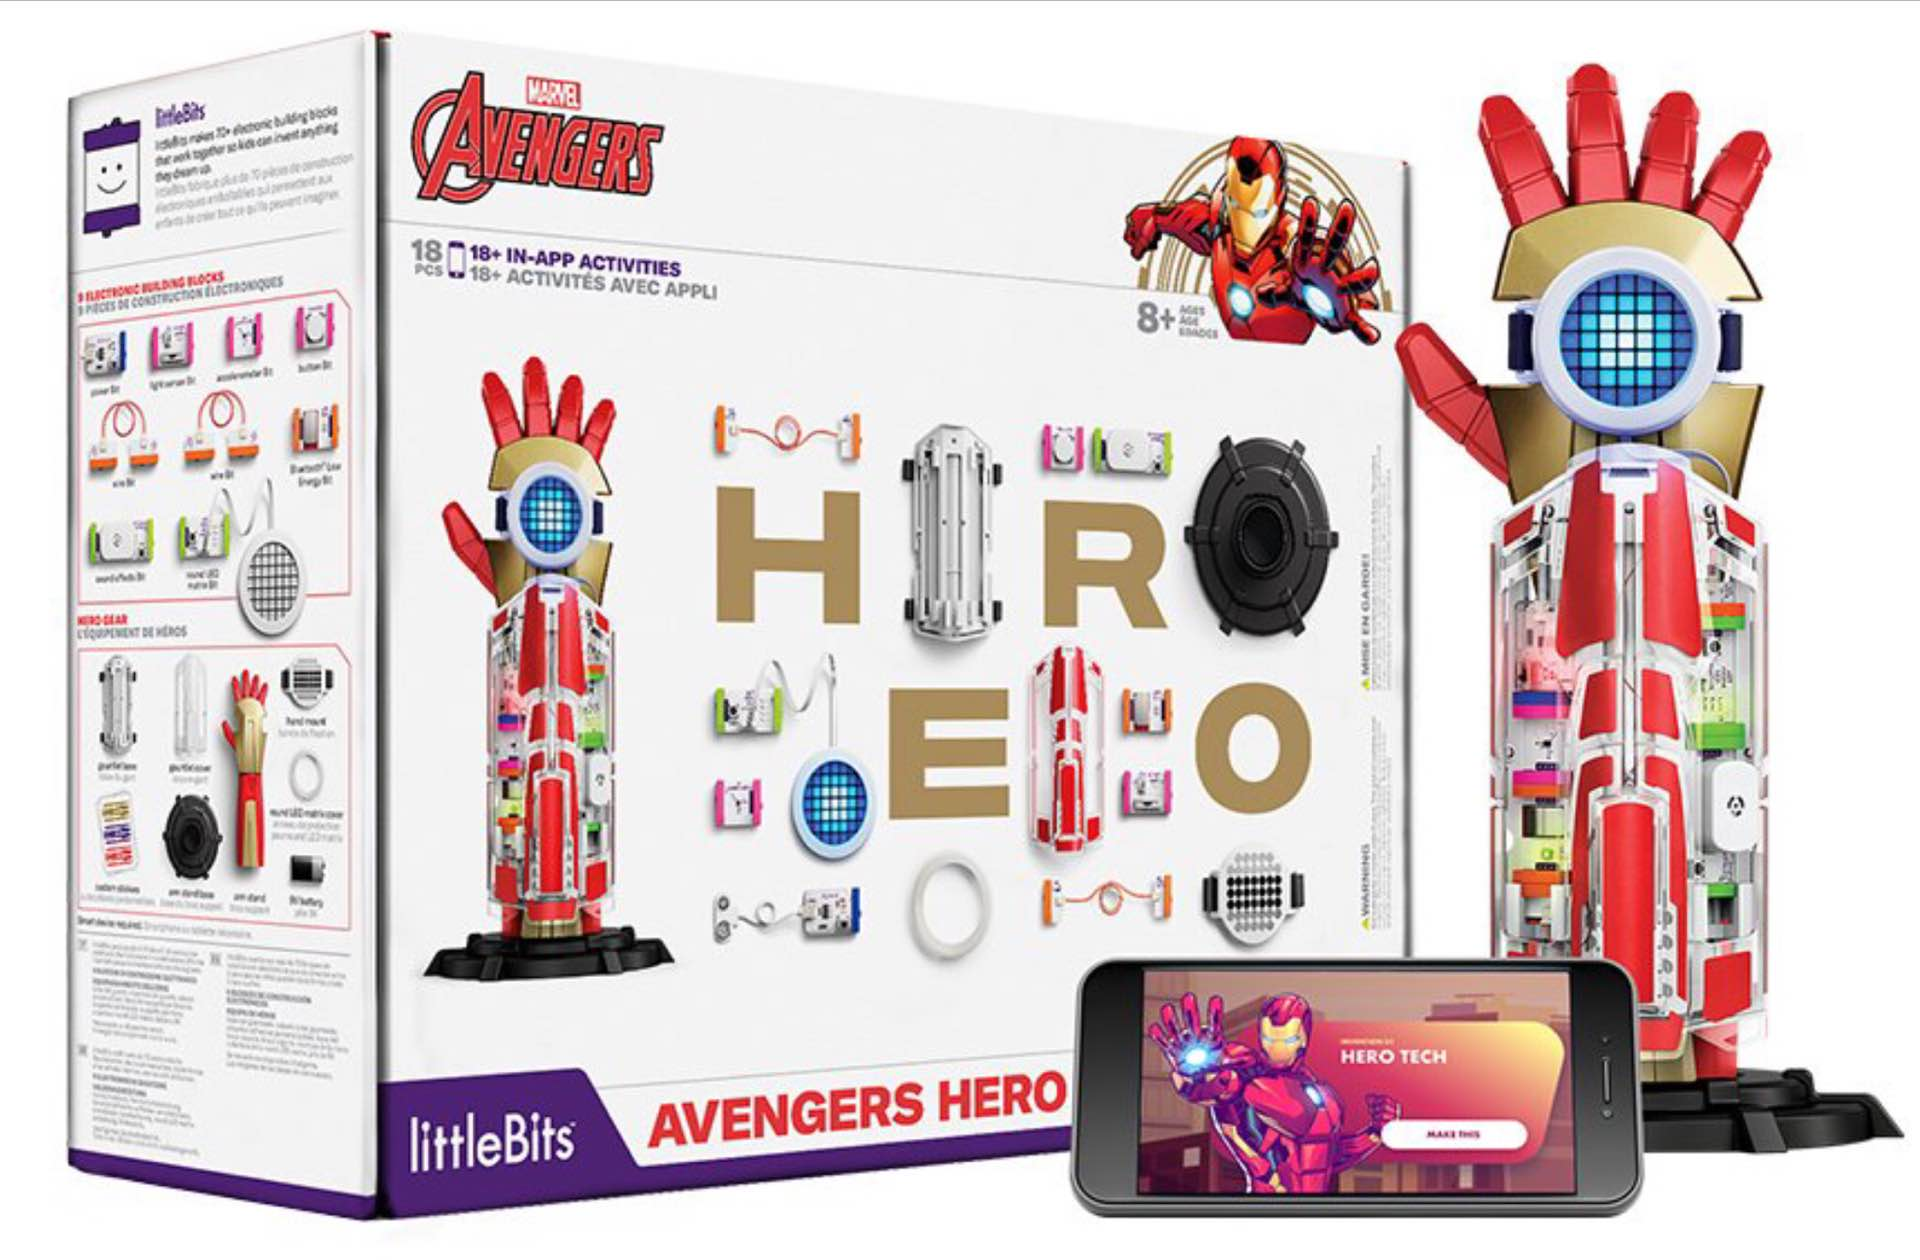 littlebits-avengers-hero-inventor-kit